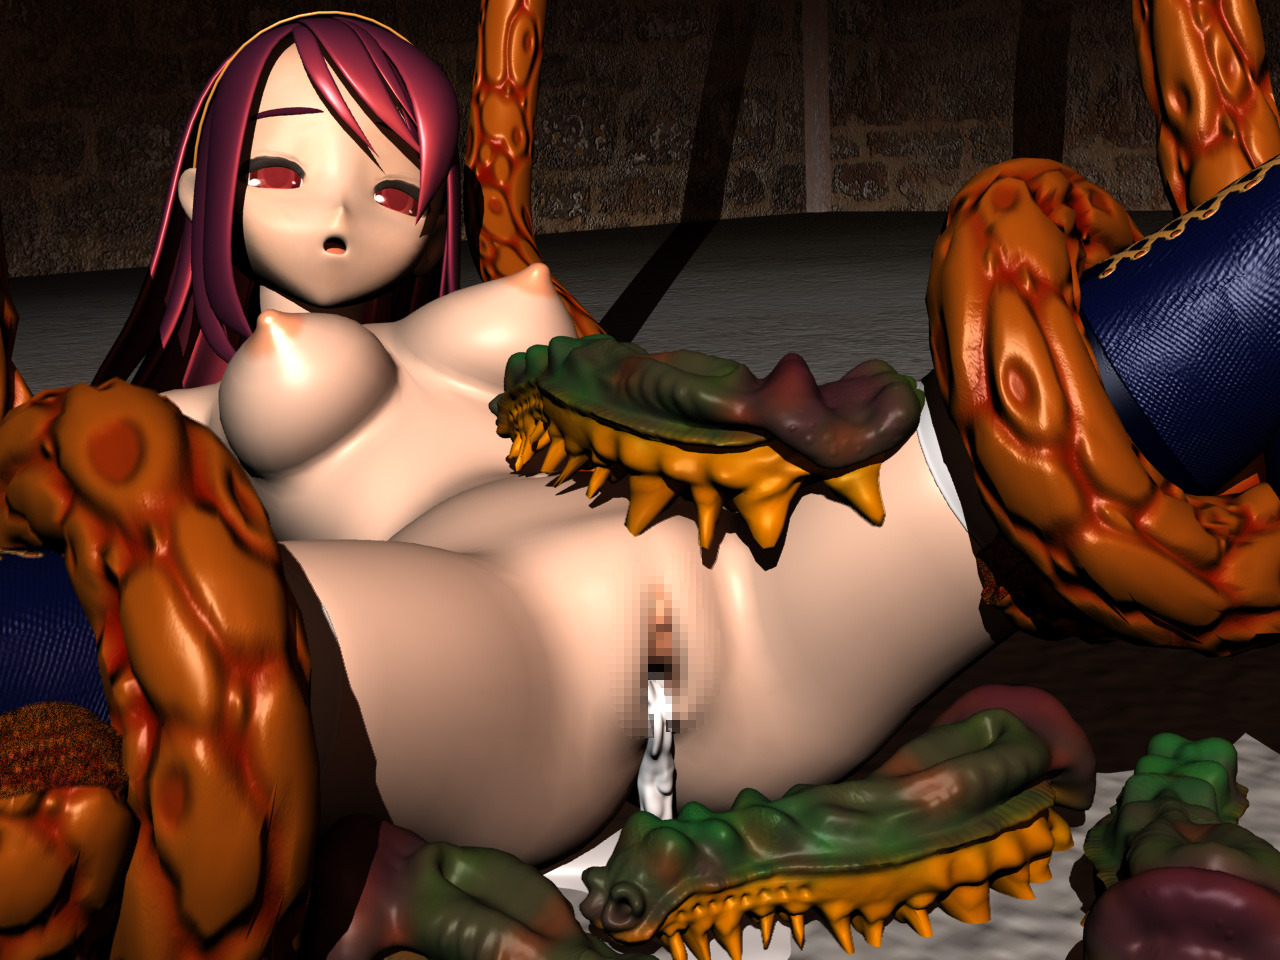 3d games pornfantasy nudes picture